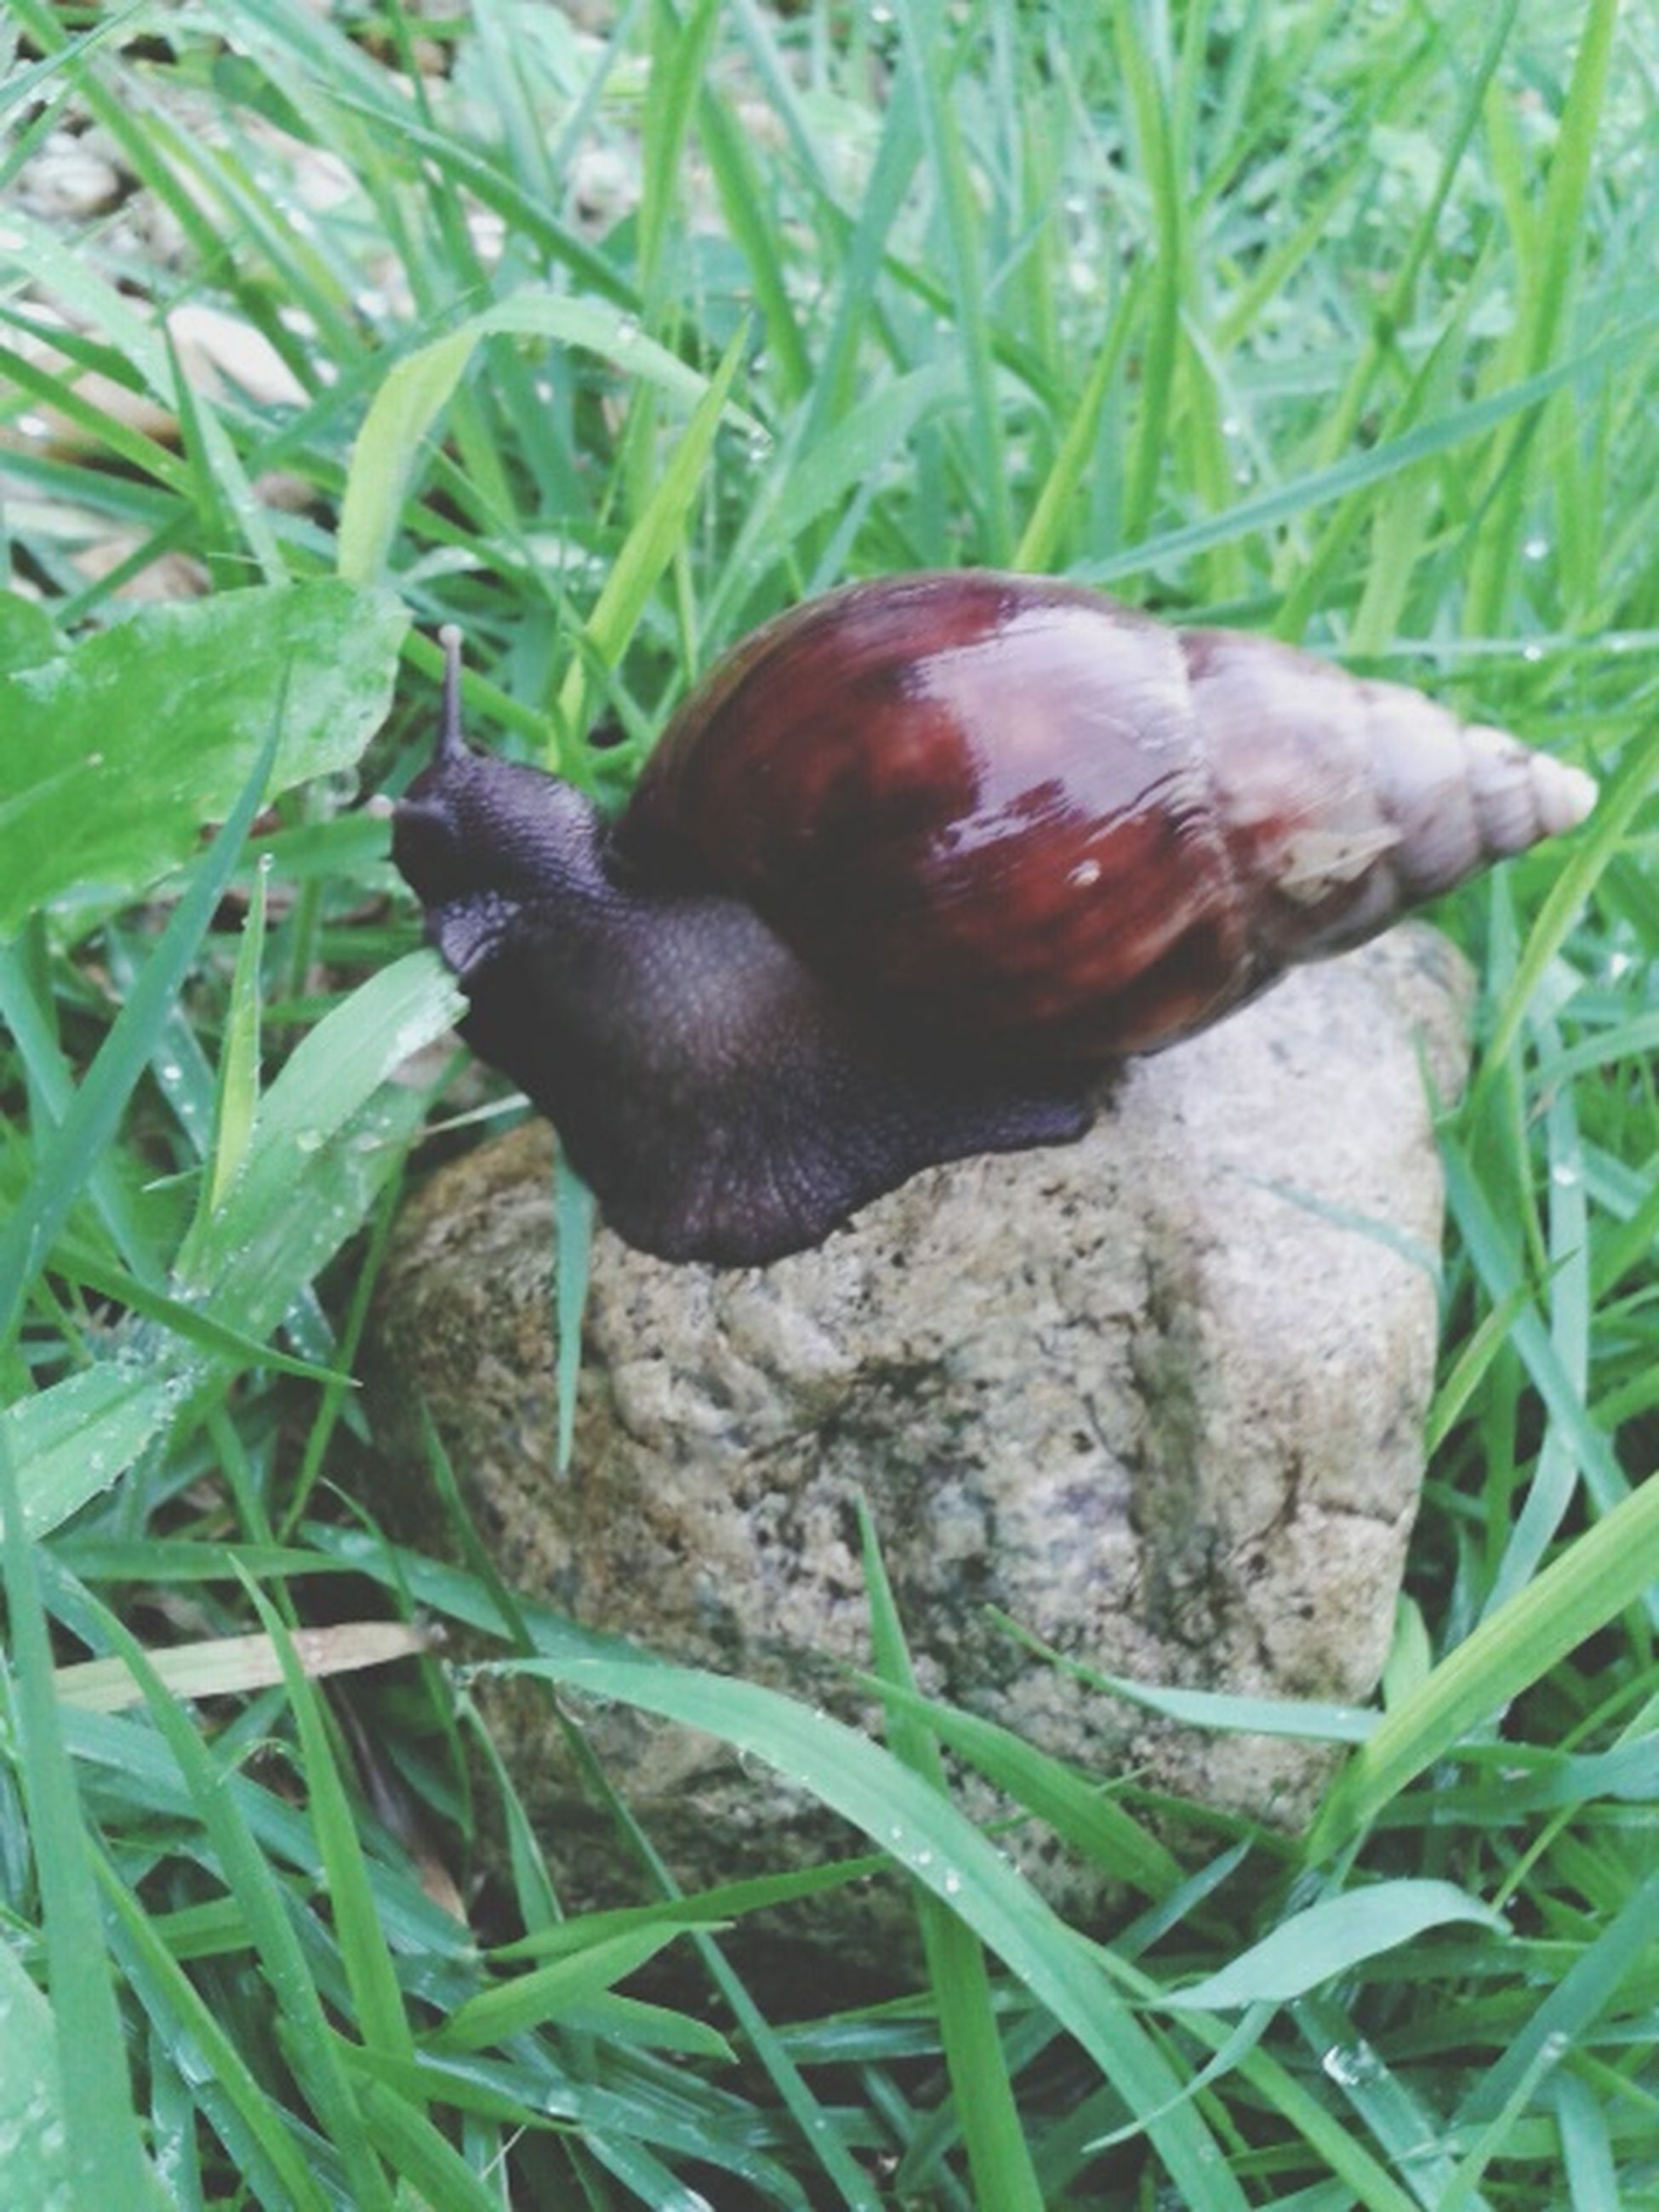 animal themes, animals in the wild, one animal, wildlife, bird, grass, green color, nature, field, close-up, snail, perching, full length, outdoors, high angle view, day, grassy, plant, no people, growth